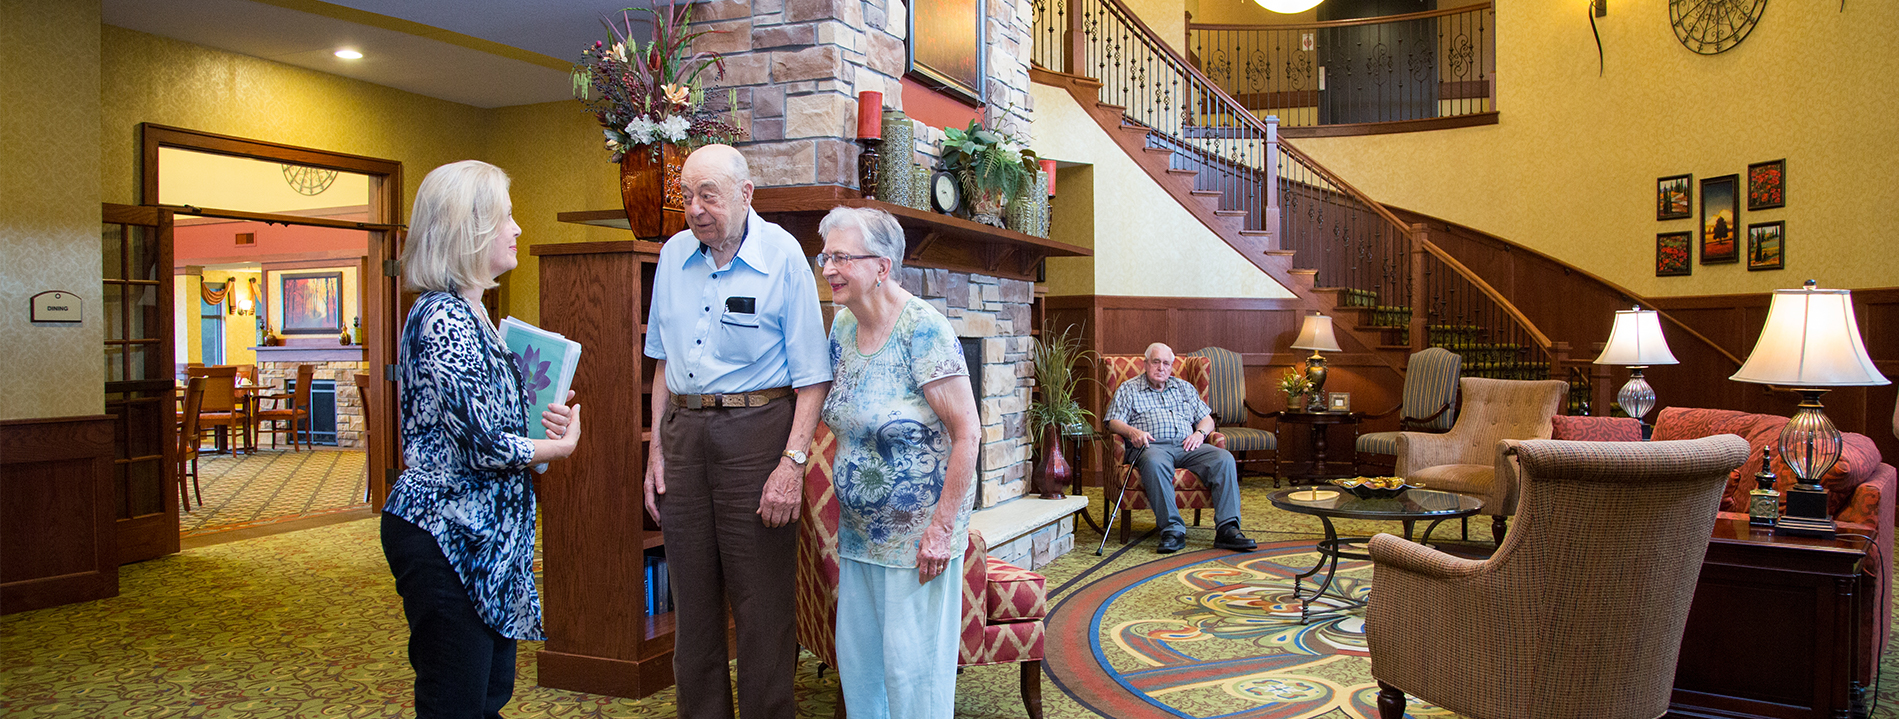 Lilydale Senior Living | Independent, Assisted, Memory ...